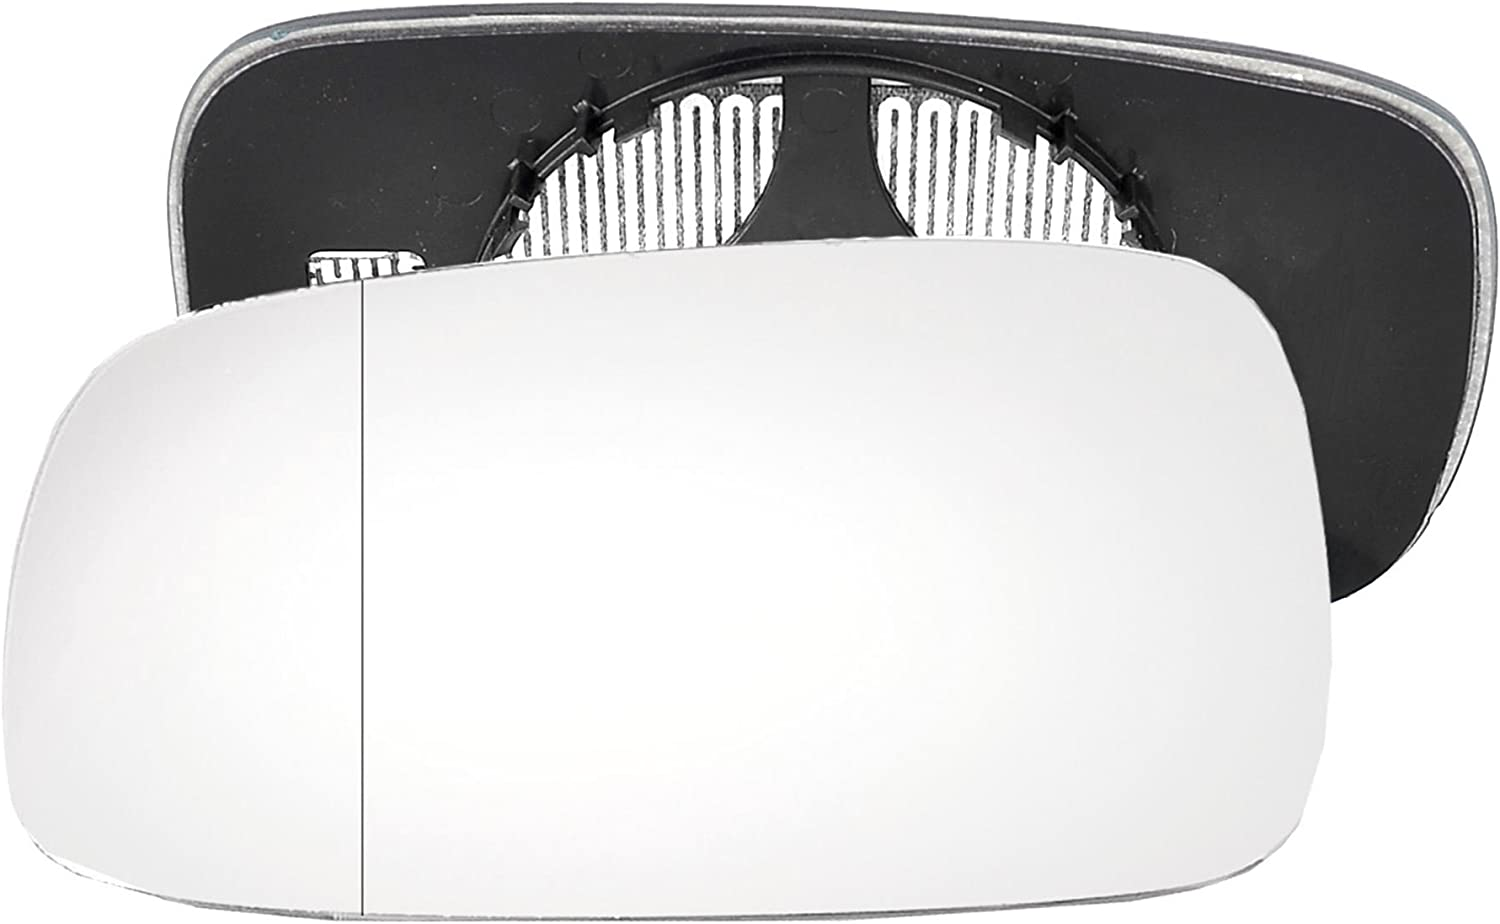 Passenger left hand side Heated wing door Silver mirror glass with backing plate #W-SHY//L-RTSC04 Clip On